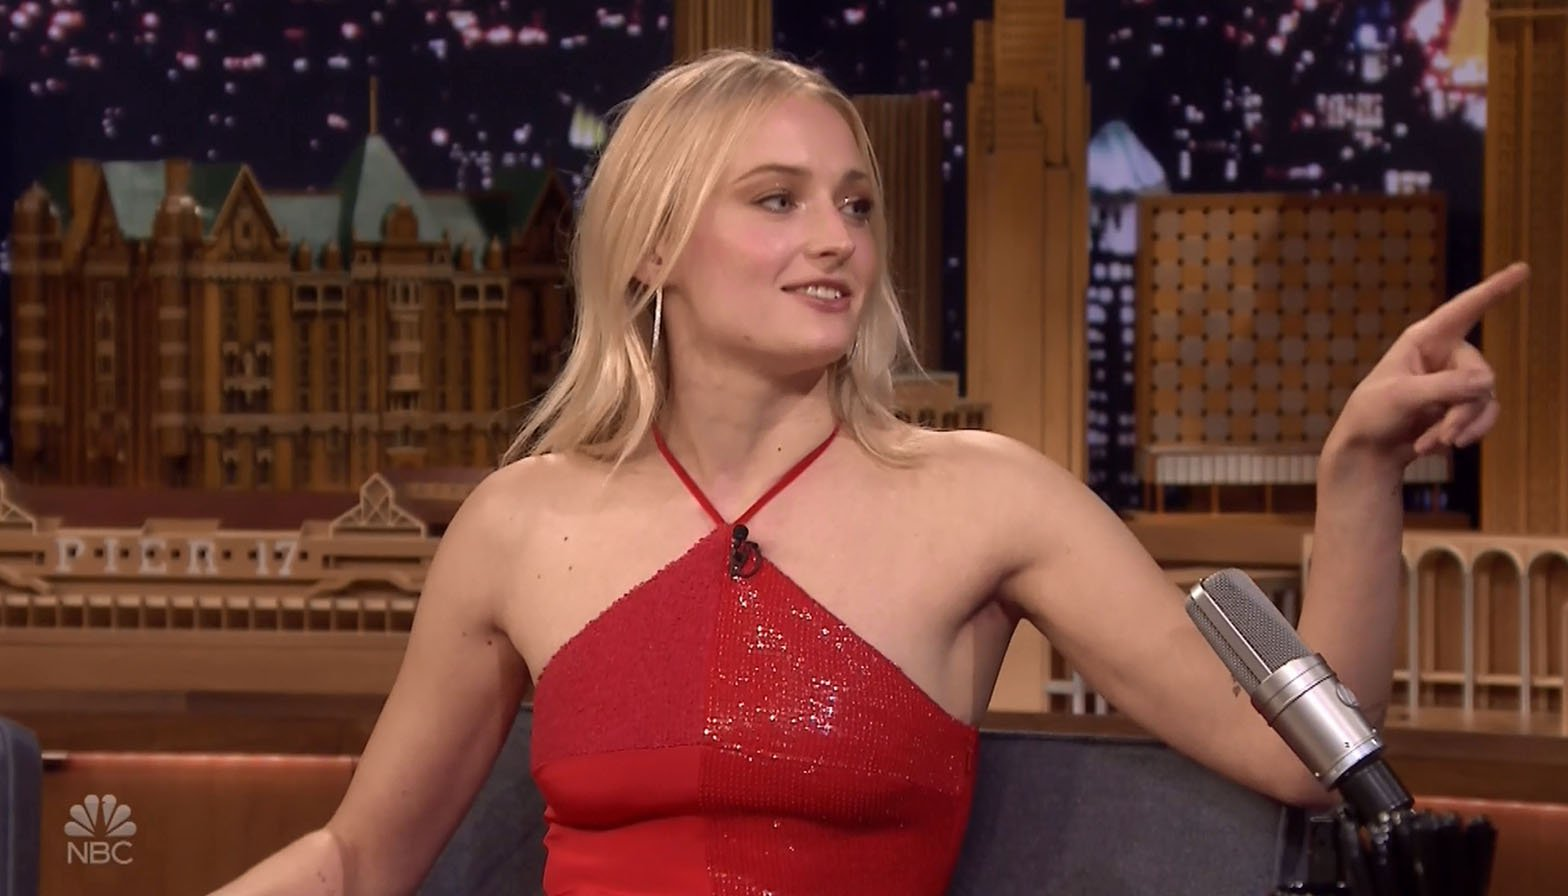 Game of Thrones' Sophie Turner panics after accidentally live streaming her 'weed vape'